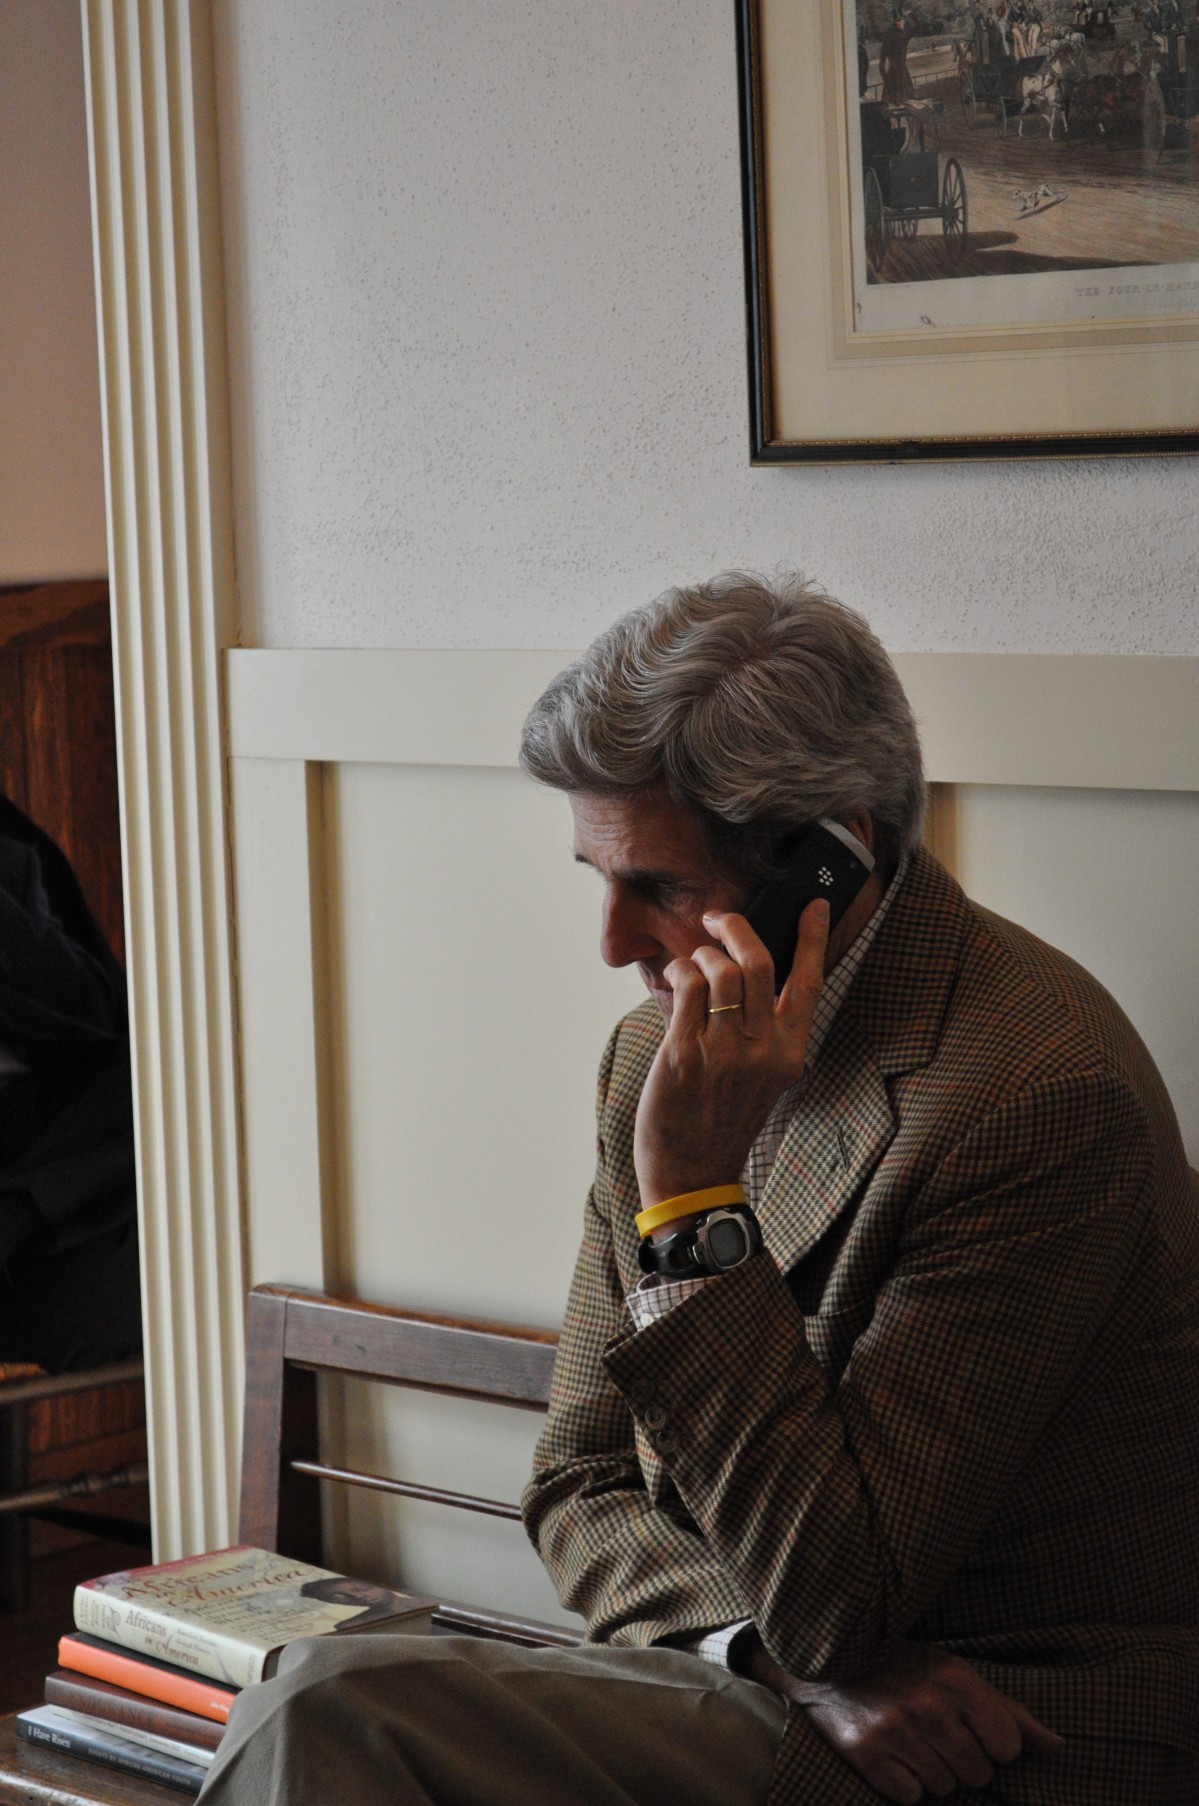 John Kerry sits a bench and holds a mobile phone to his ear